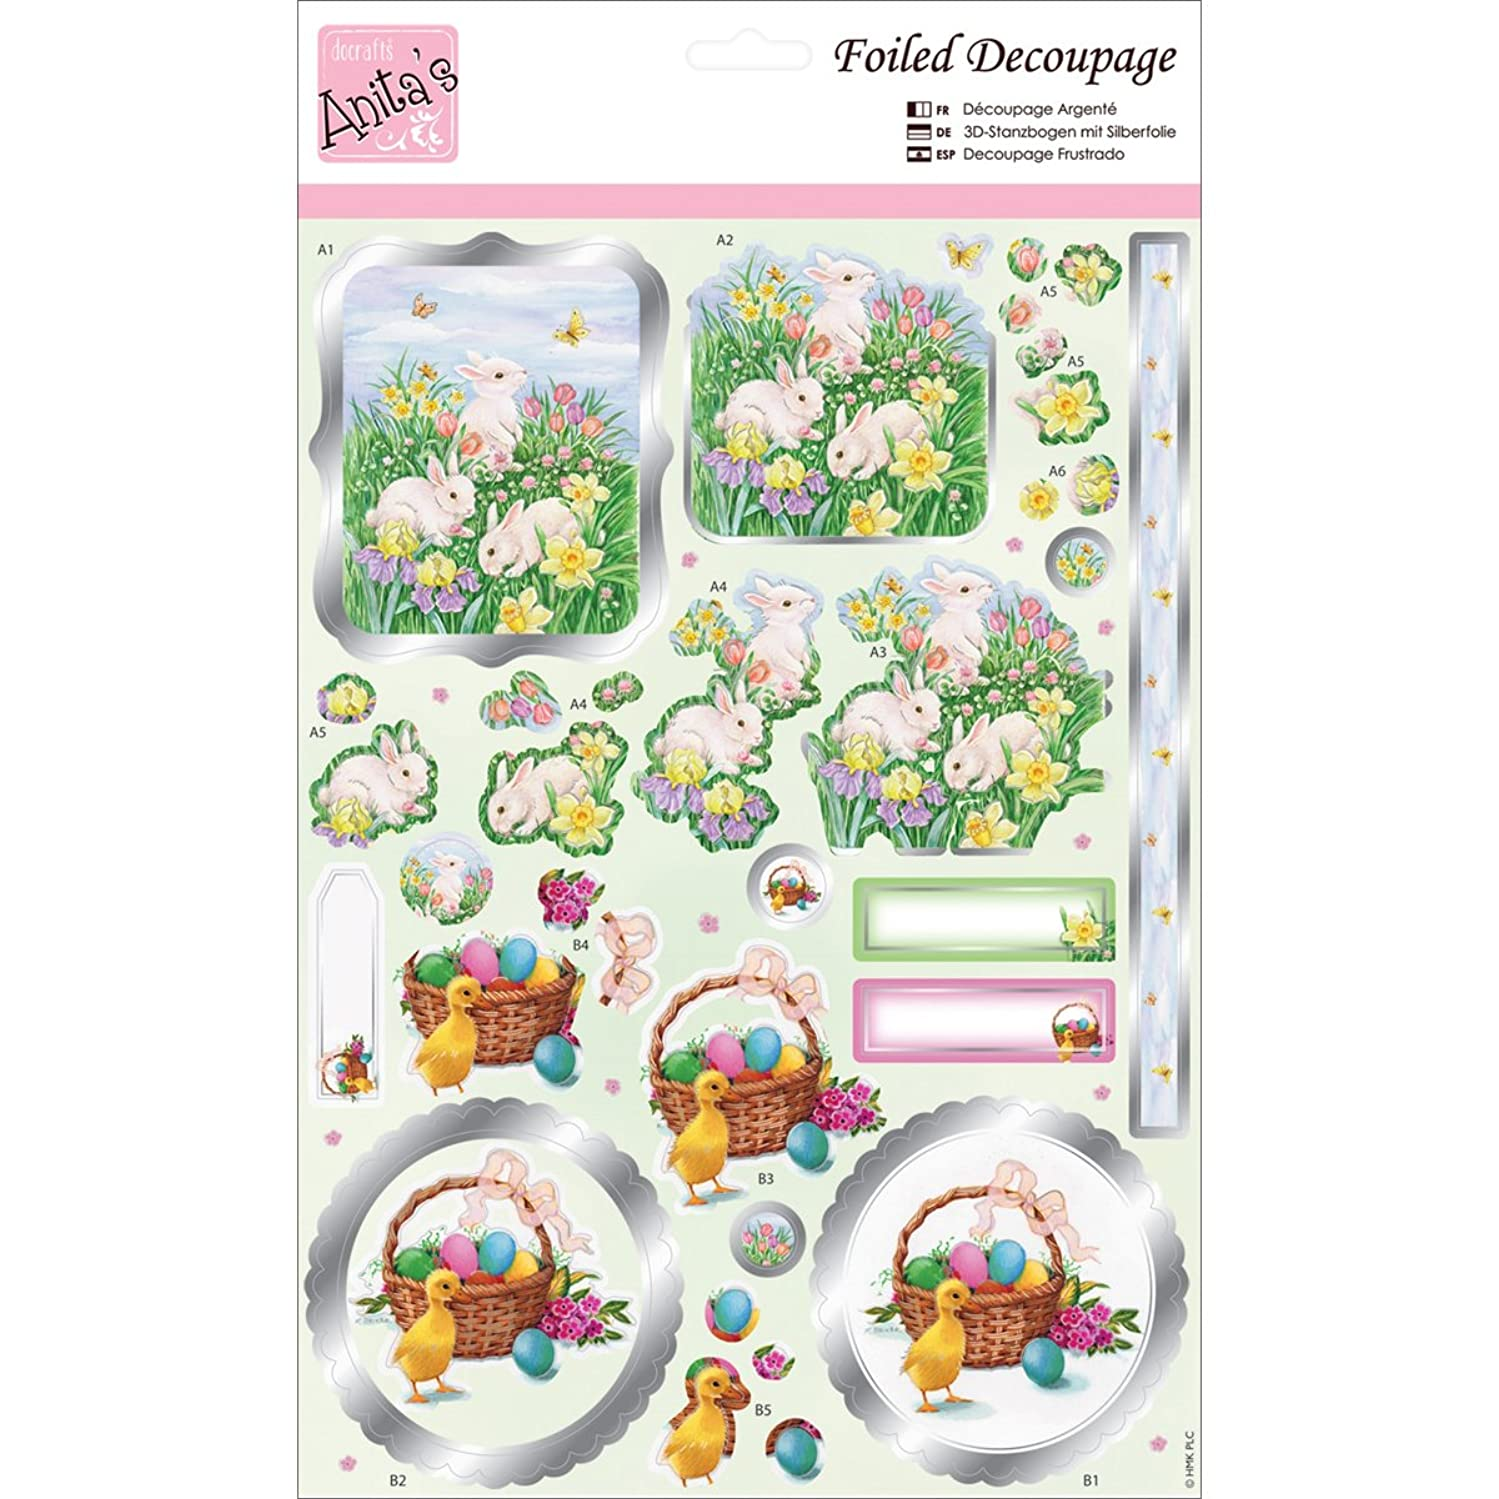 DOCrafts ANT169635 Anita's A4 Foiled Decoupage Sheet, Rabbits & Meadows, Multicolor